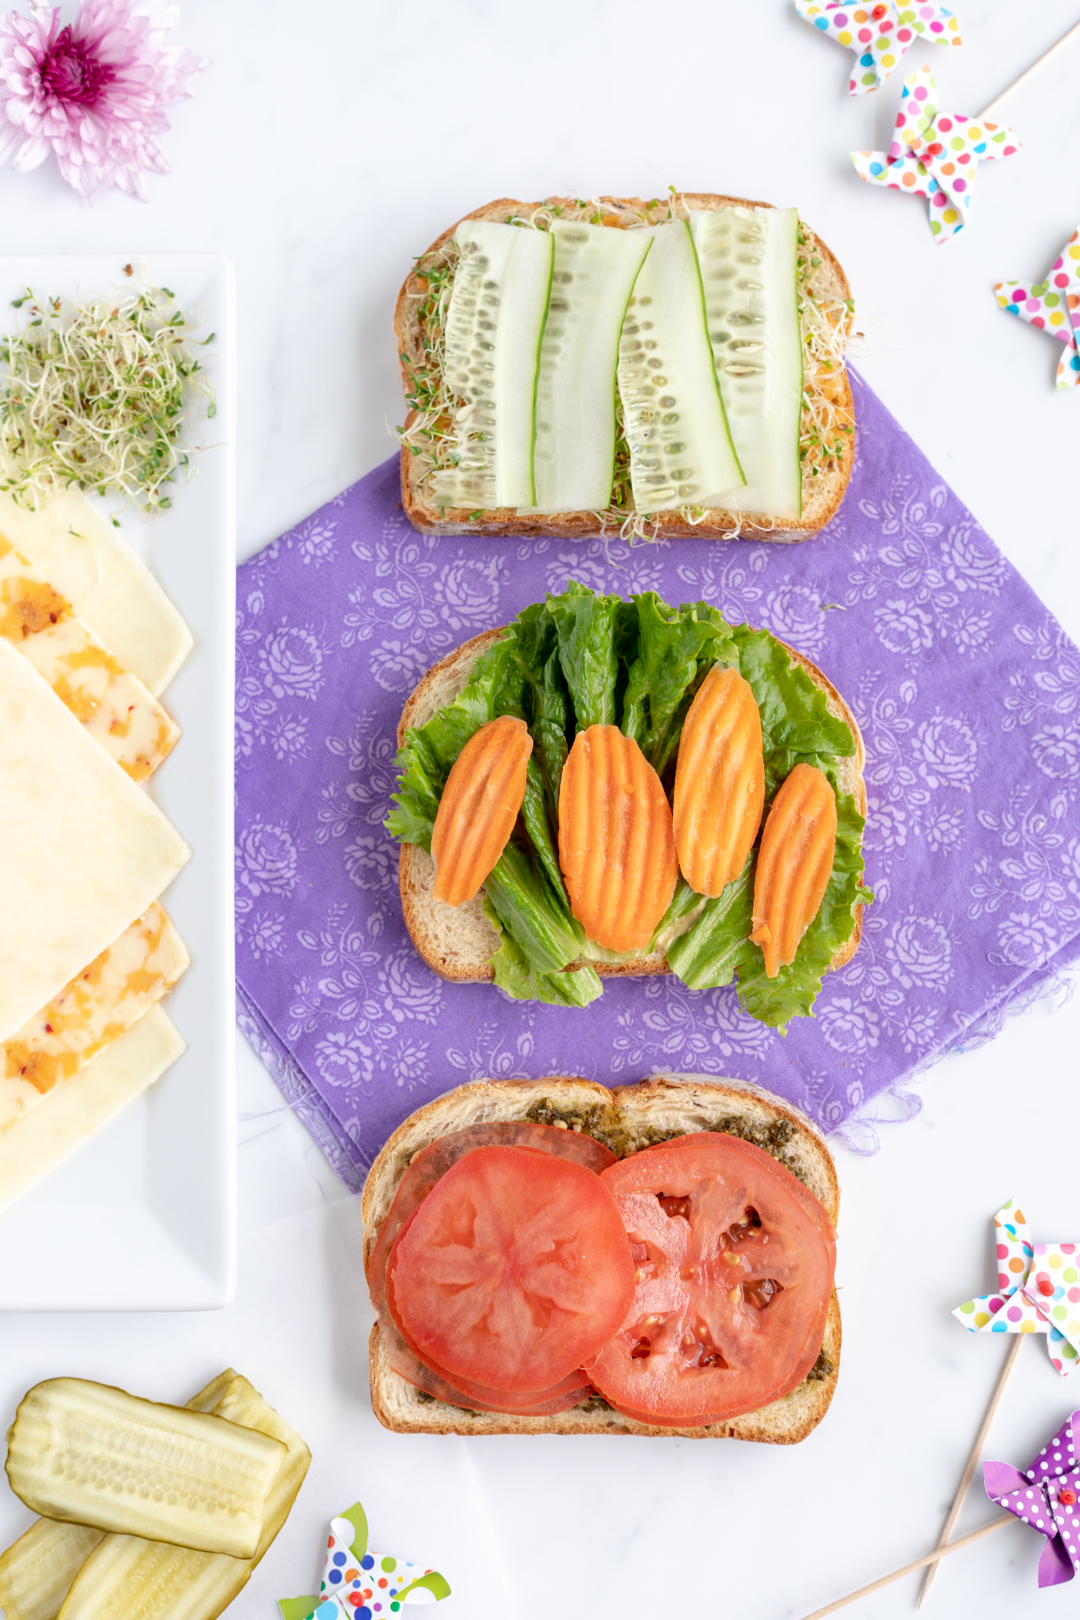 Picnic Sandwiches. Veggie packed sandwiches.